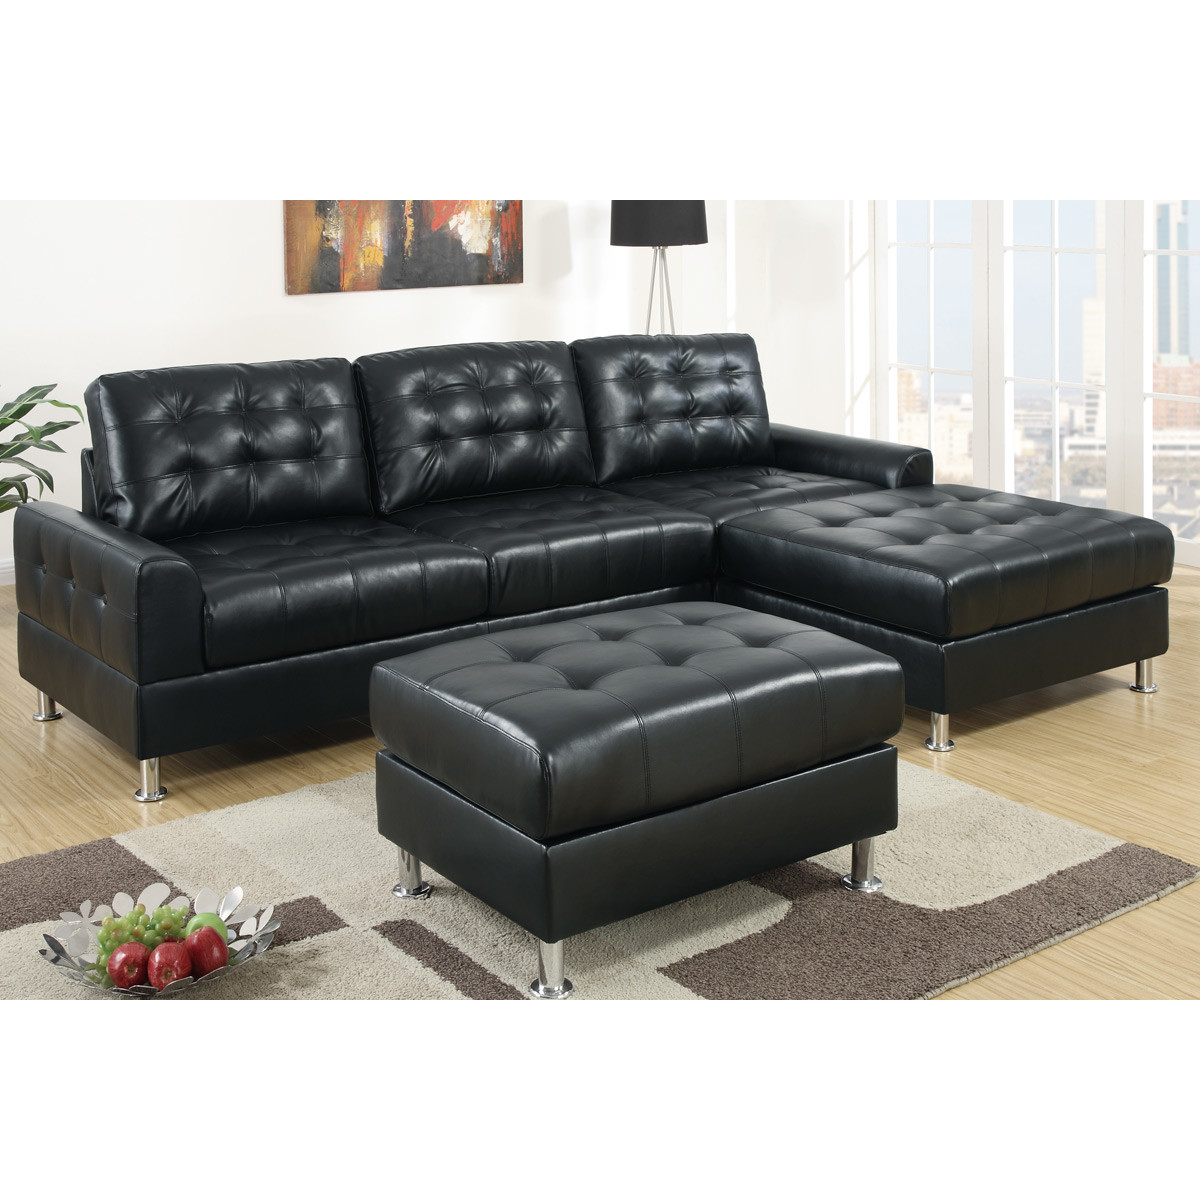 amazing poundex bobkona modular sectional homesfeed. Black Bedroom Furniture Sets. Home Design Ideas